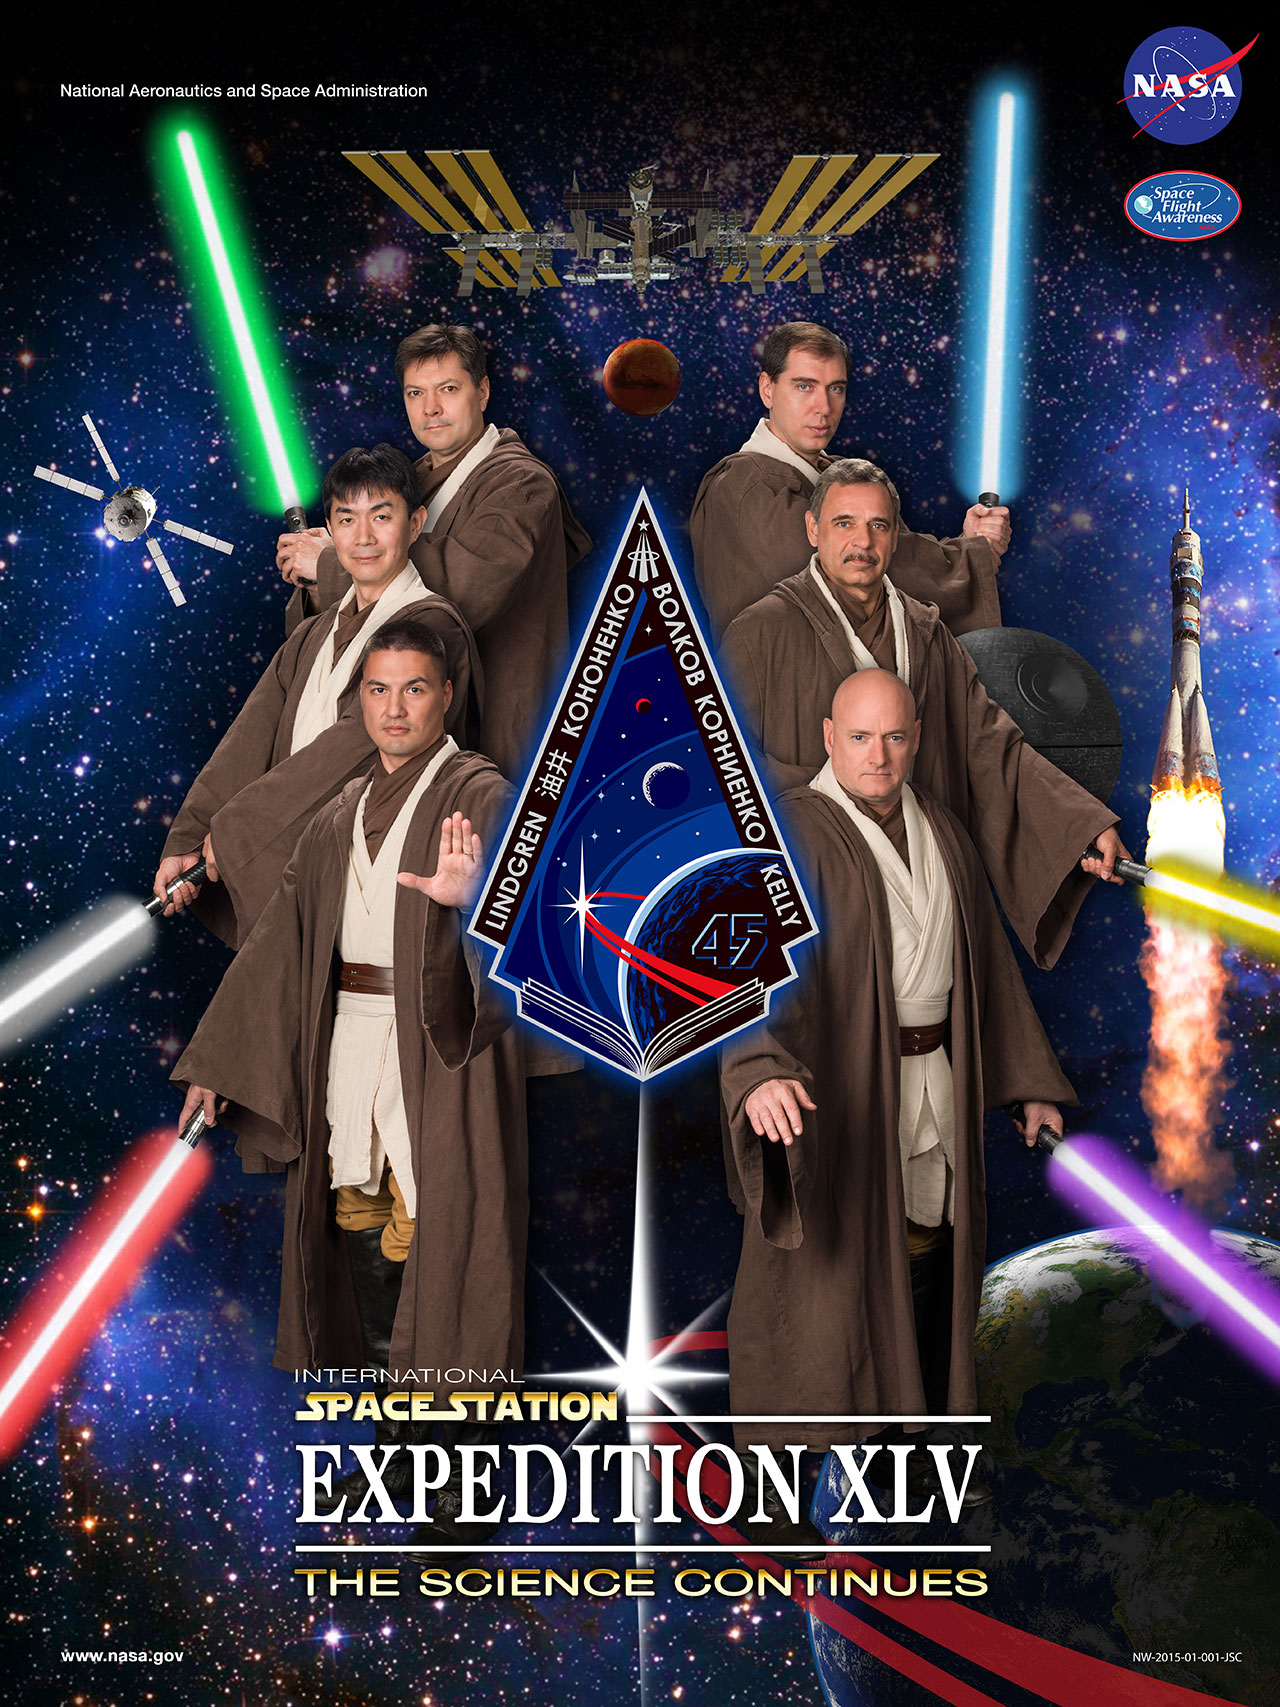 Future Space Station Crew Dons Jedi Robes For Star Wars